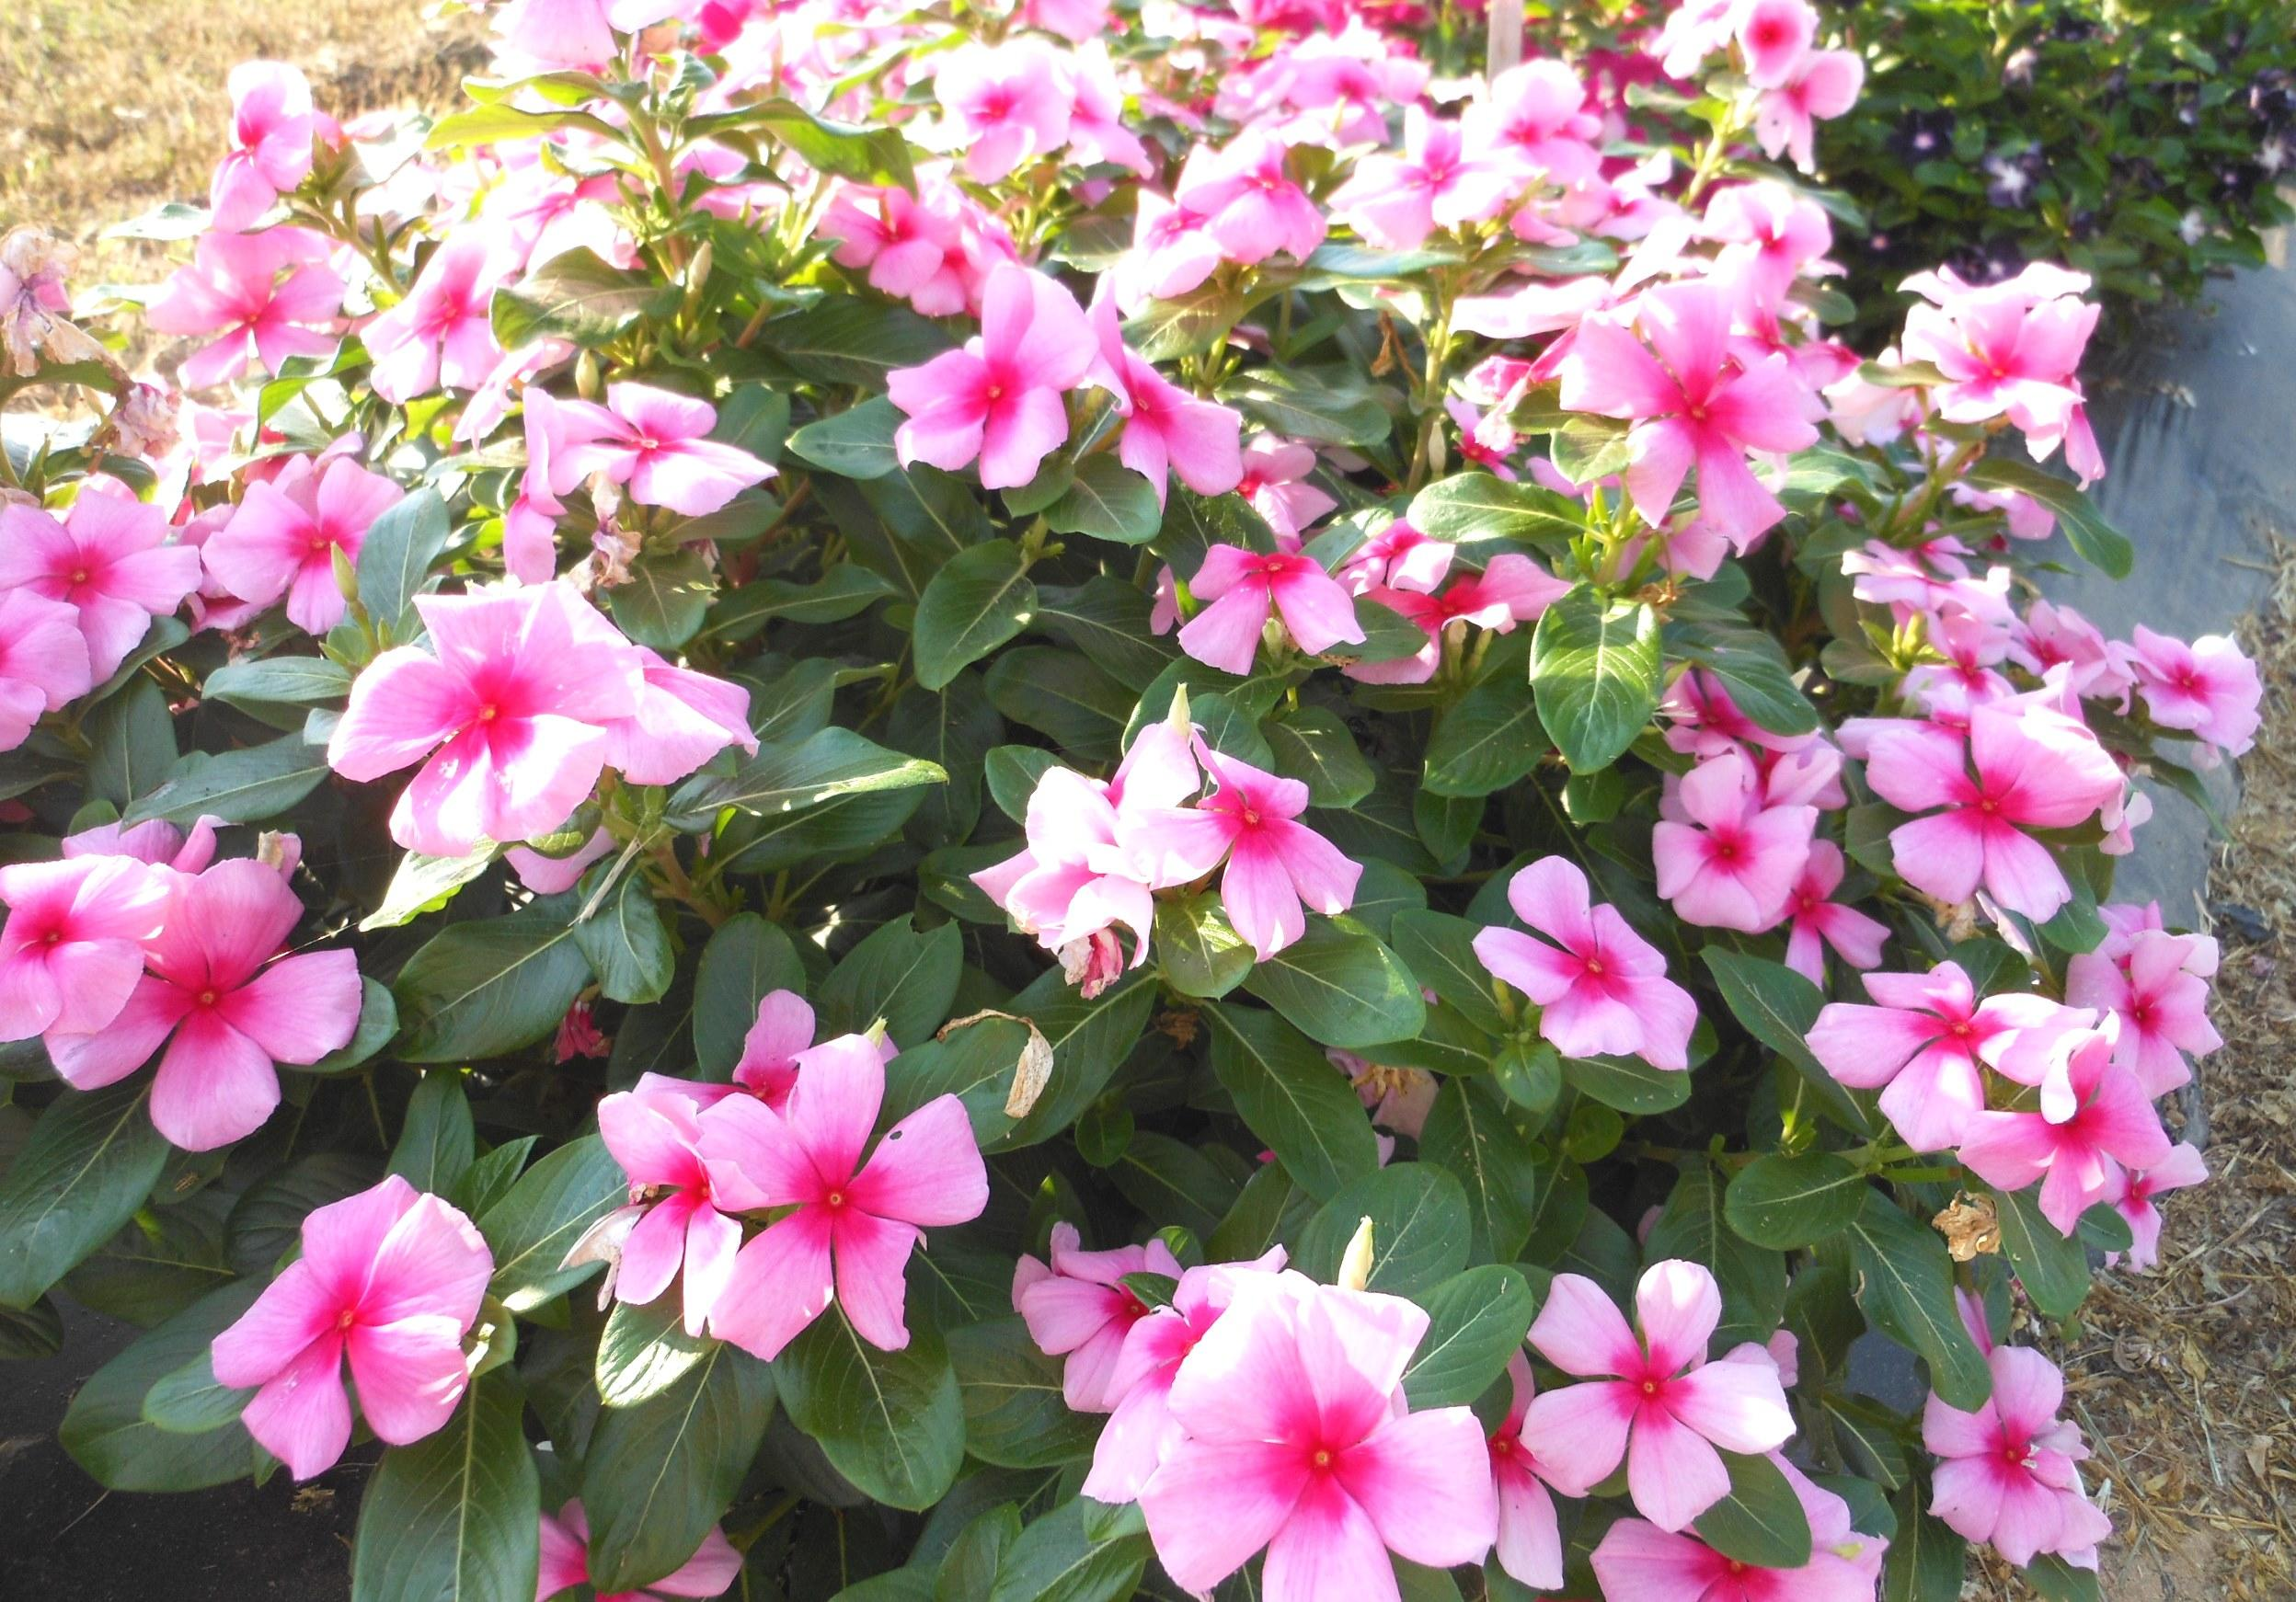 Cora and Nirvana Vinca – Ornamental Plants of the Week for June 15, 2015